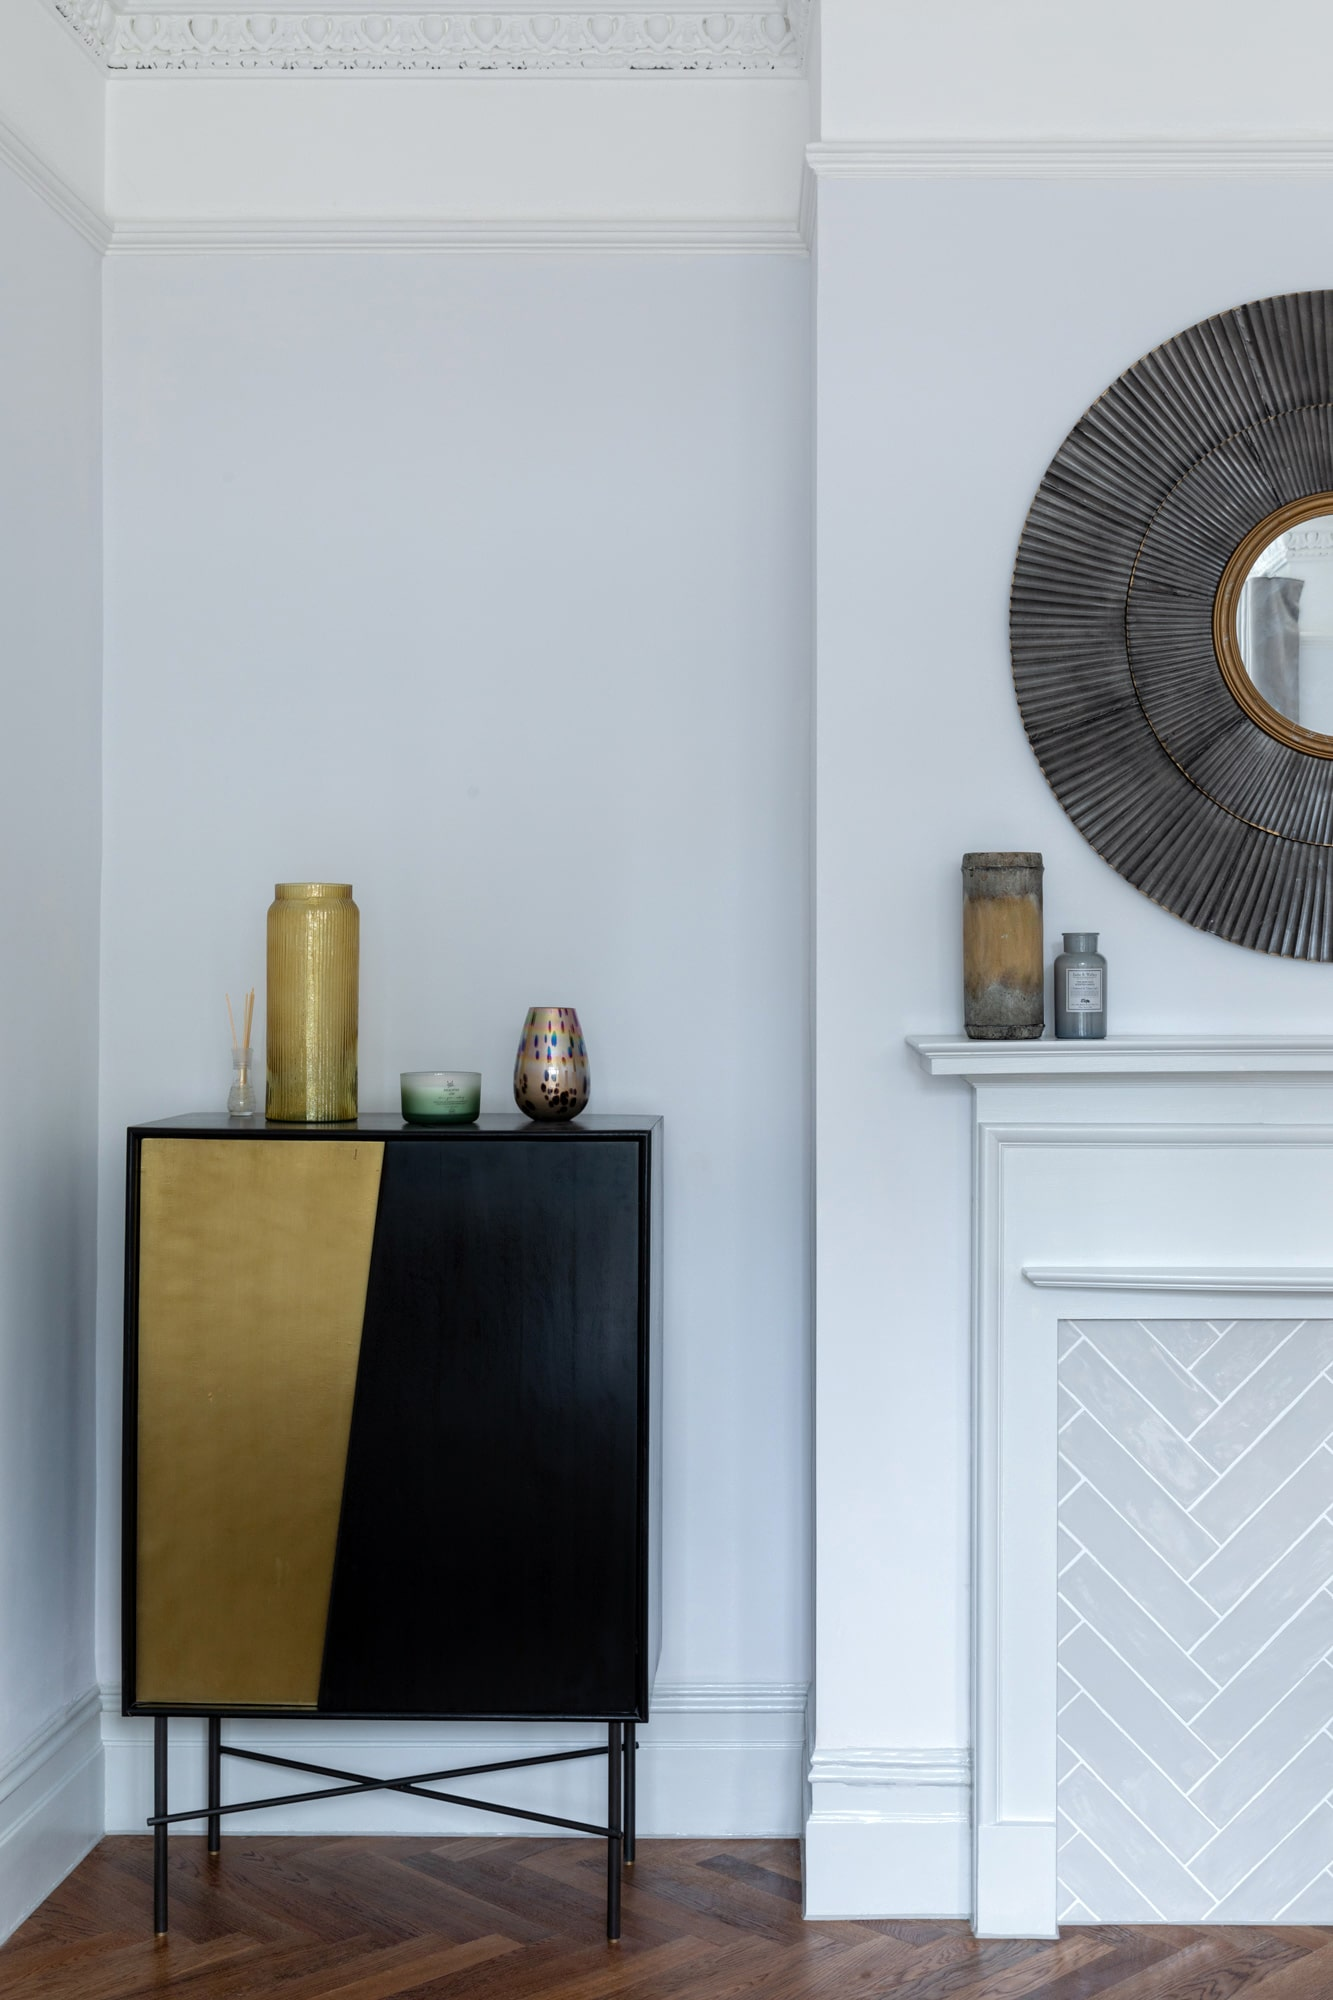 Interior design photography: bedroom with light blue walls, black and golden cabinet yellow vases on it and round mirror above a fireplace